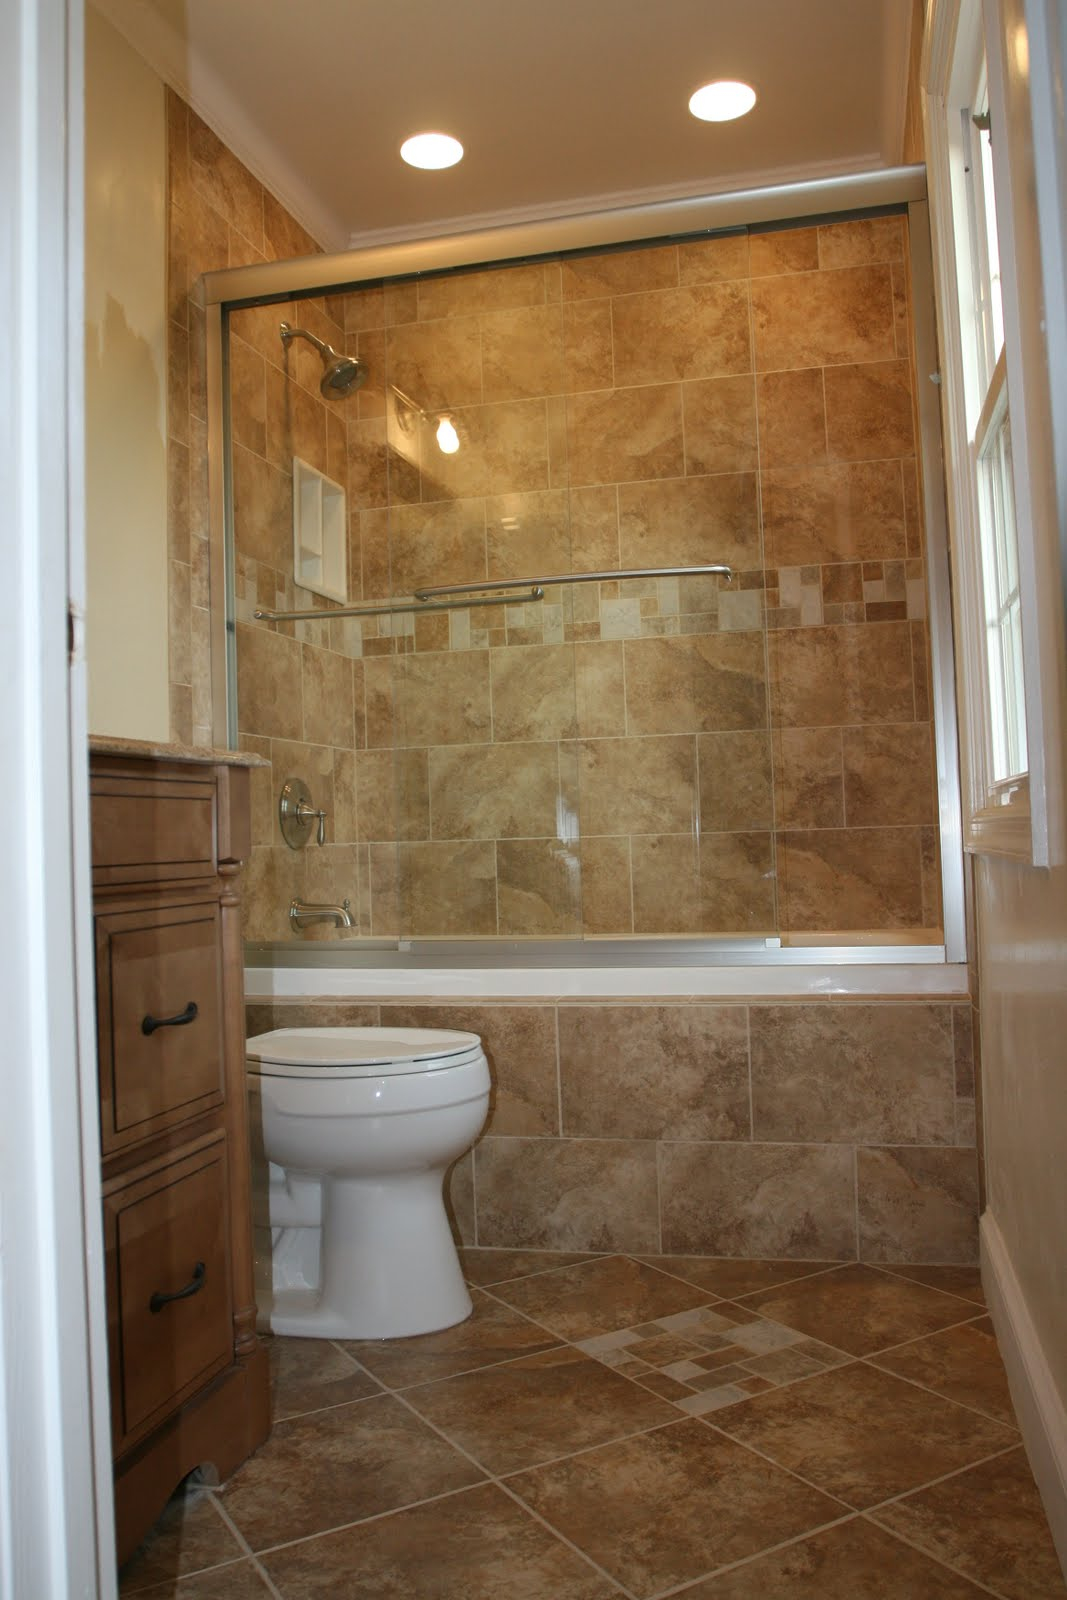 Bathroom Improvements Of Bathroom Remodeling Design Ideas Tile Shower Niches